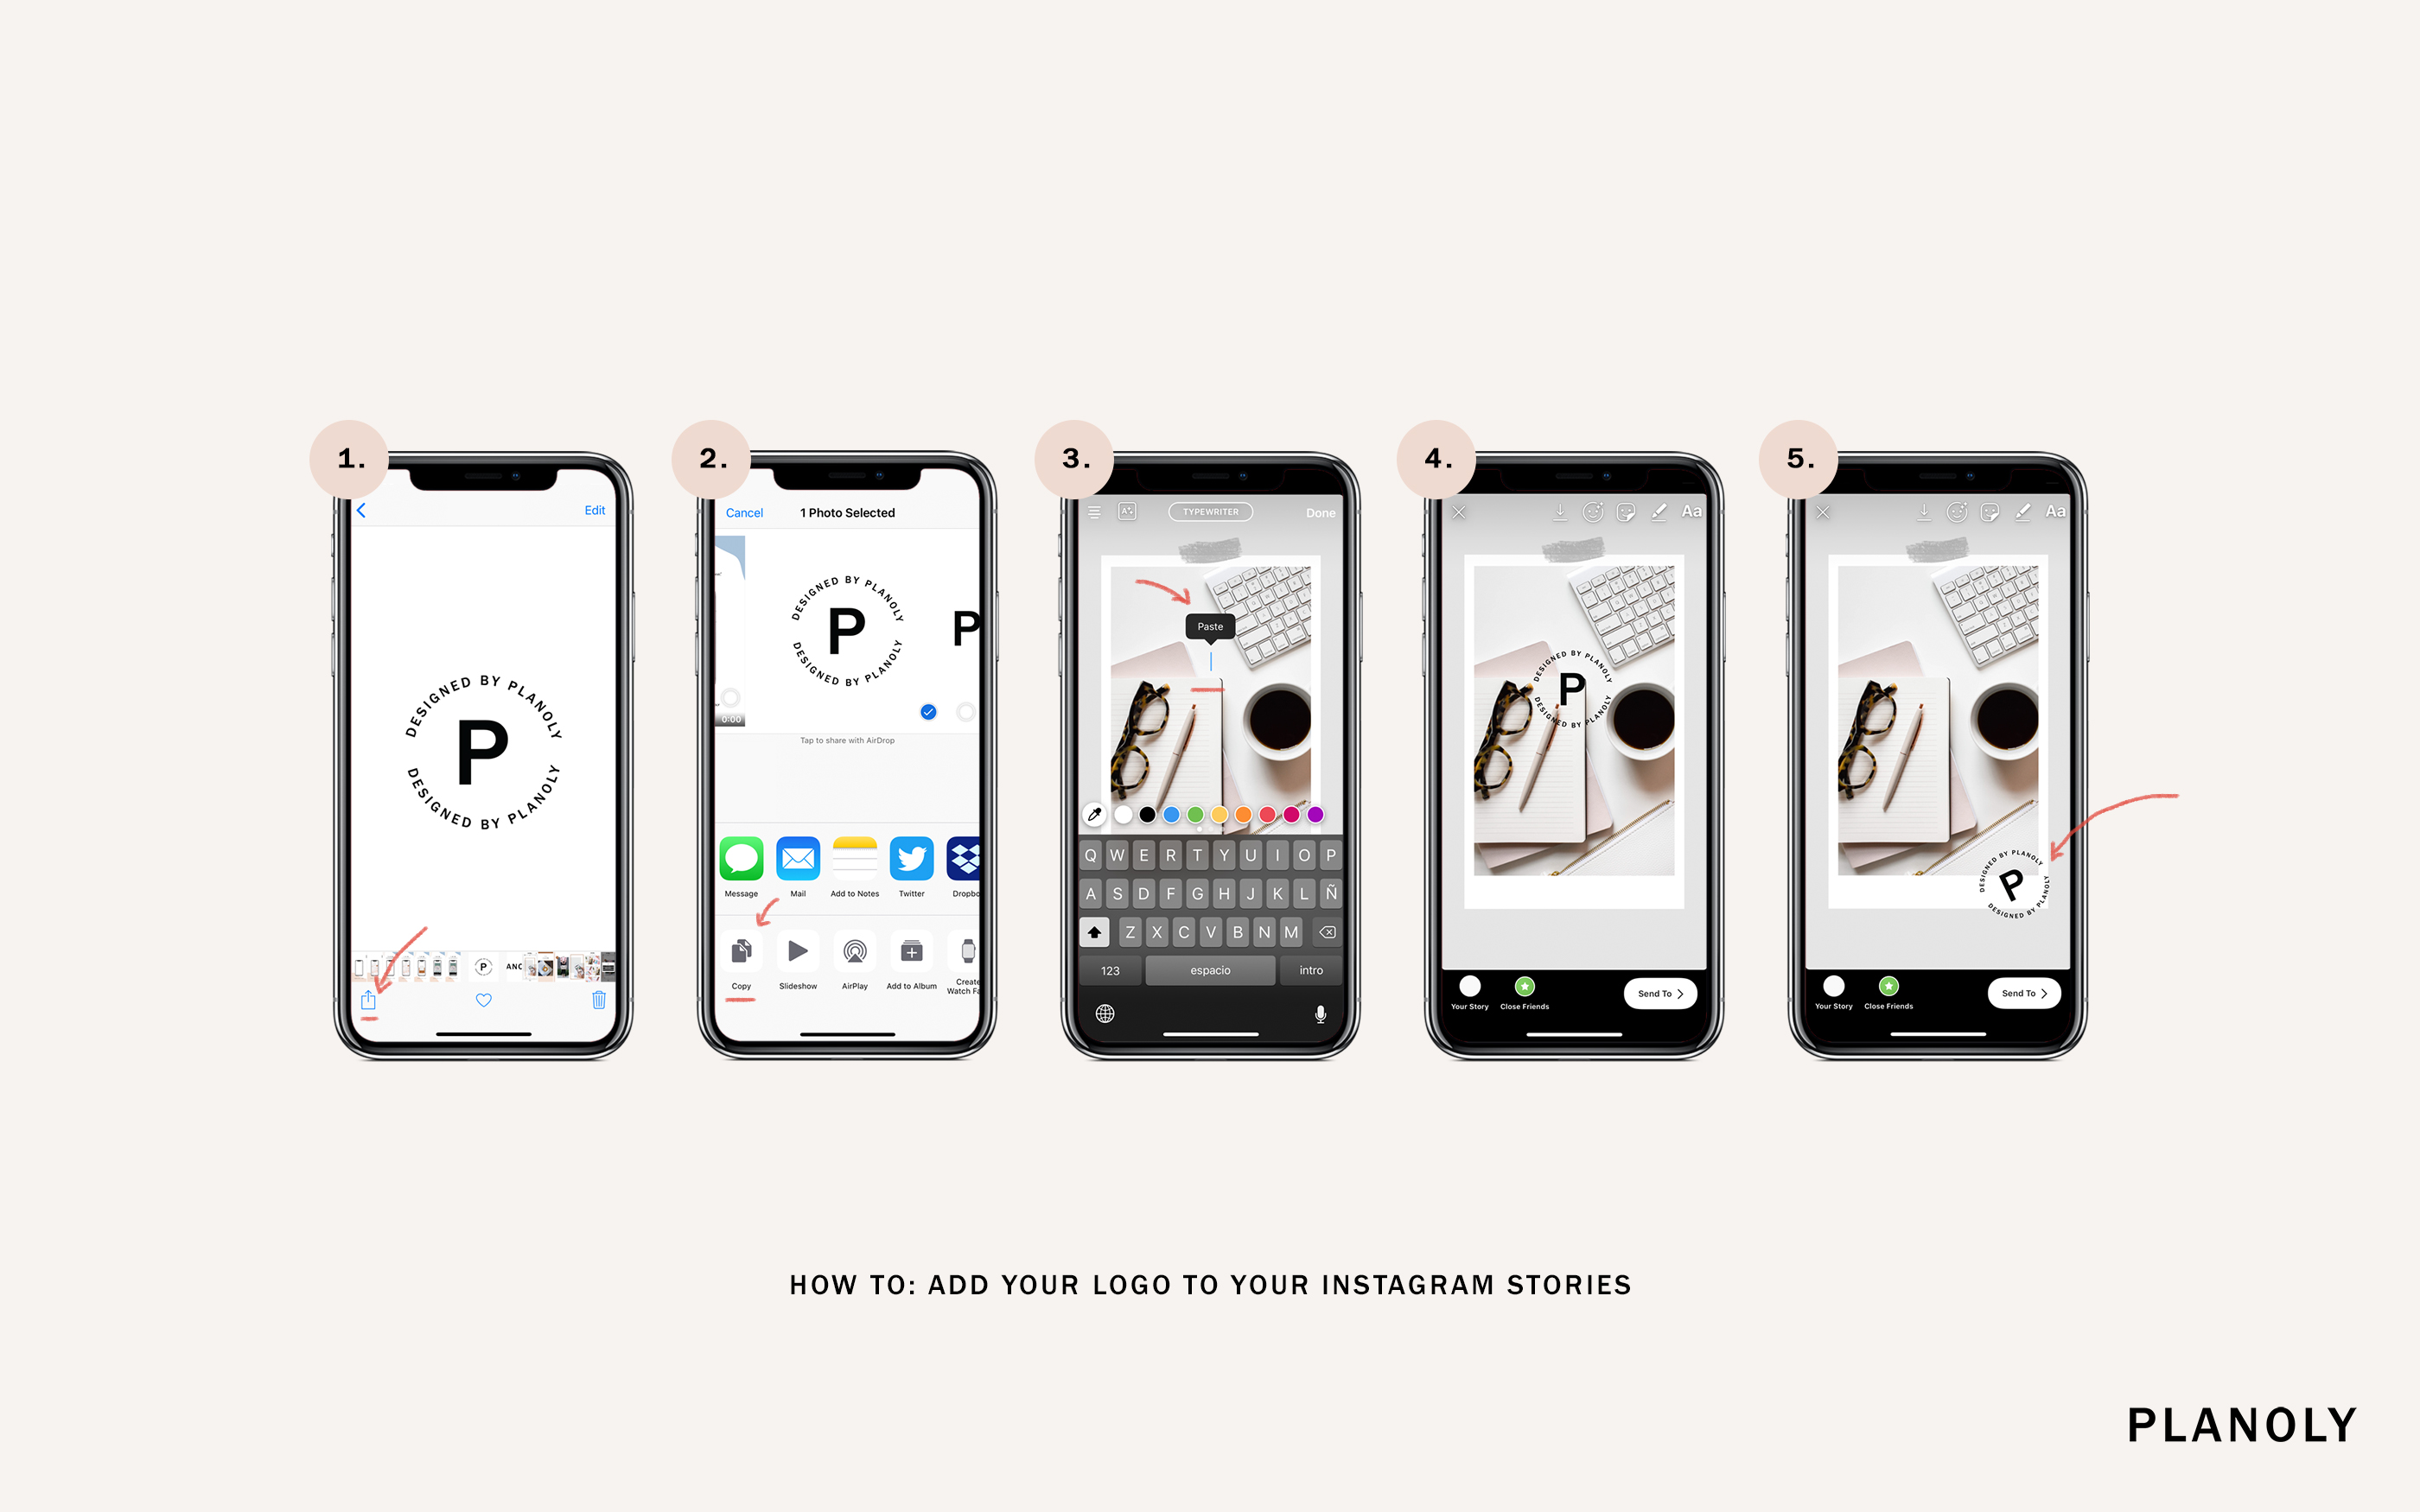 How To Add Your Logo To Your Instagram Stories - Planoly